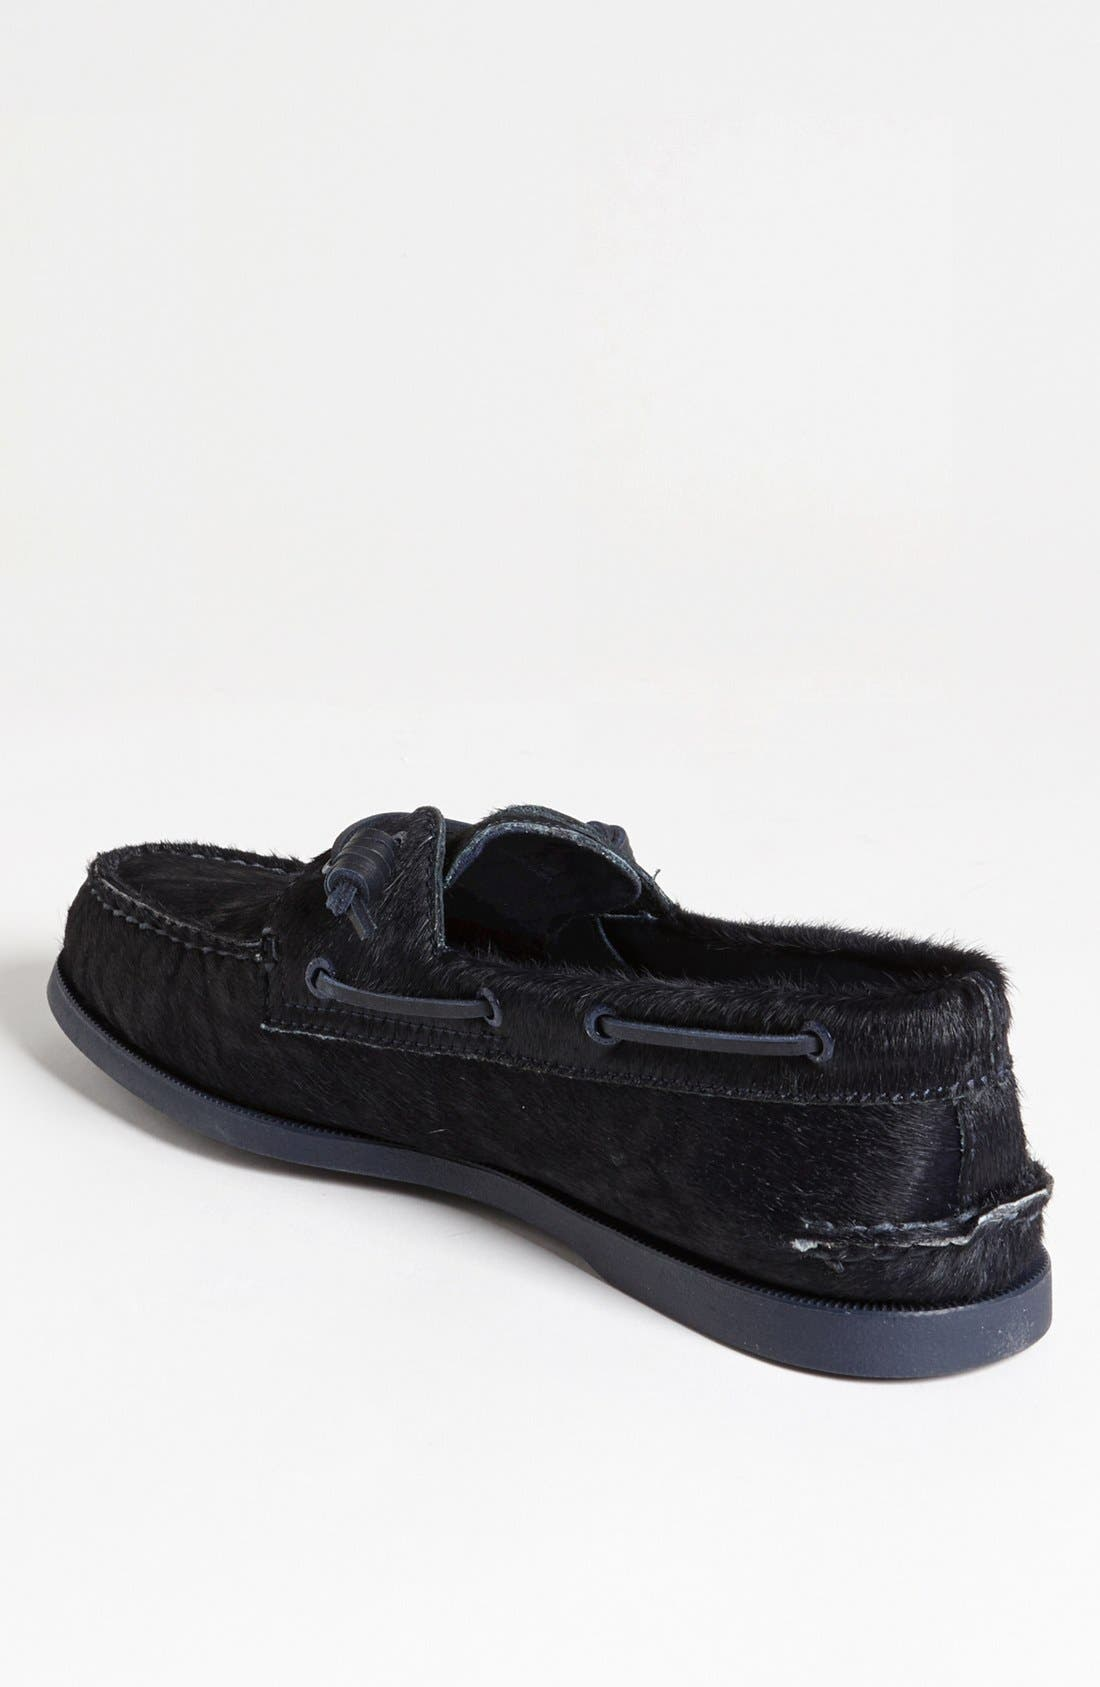 Alternate Image 2  - Sperry Top-Sider® for Jeffrey 'Authentic Original' Calf Hair Boat Shoe